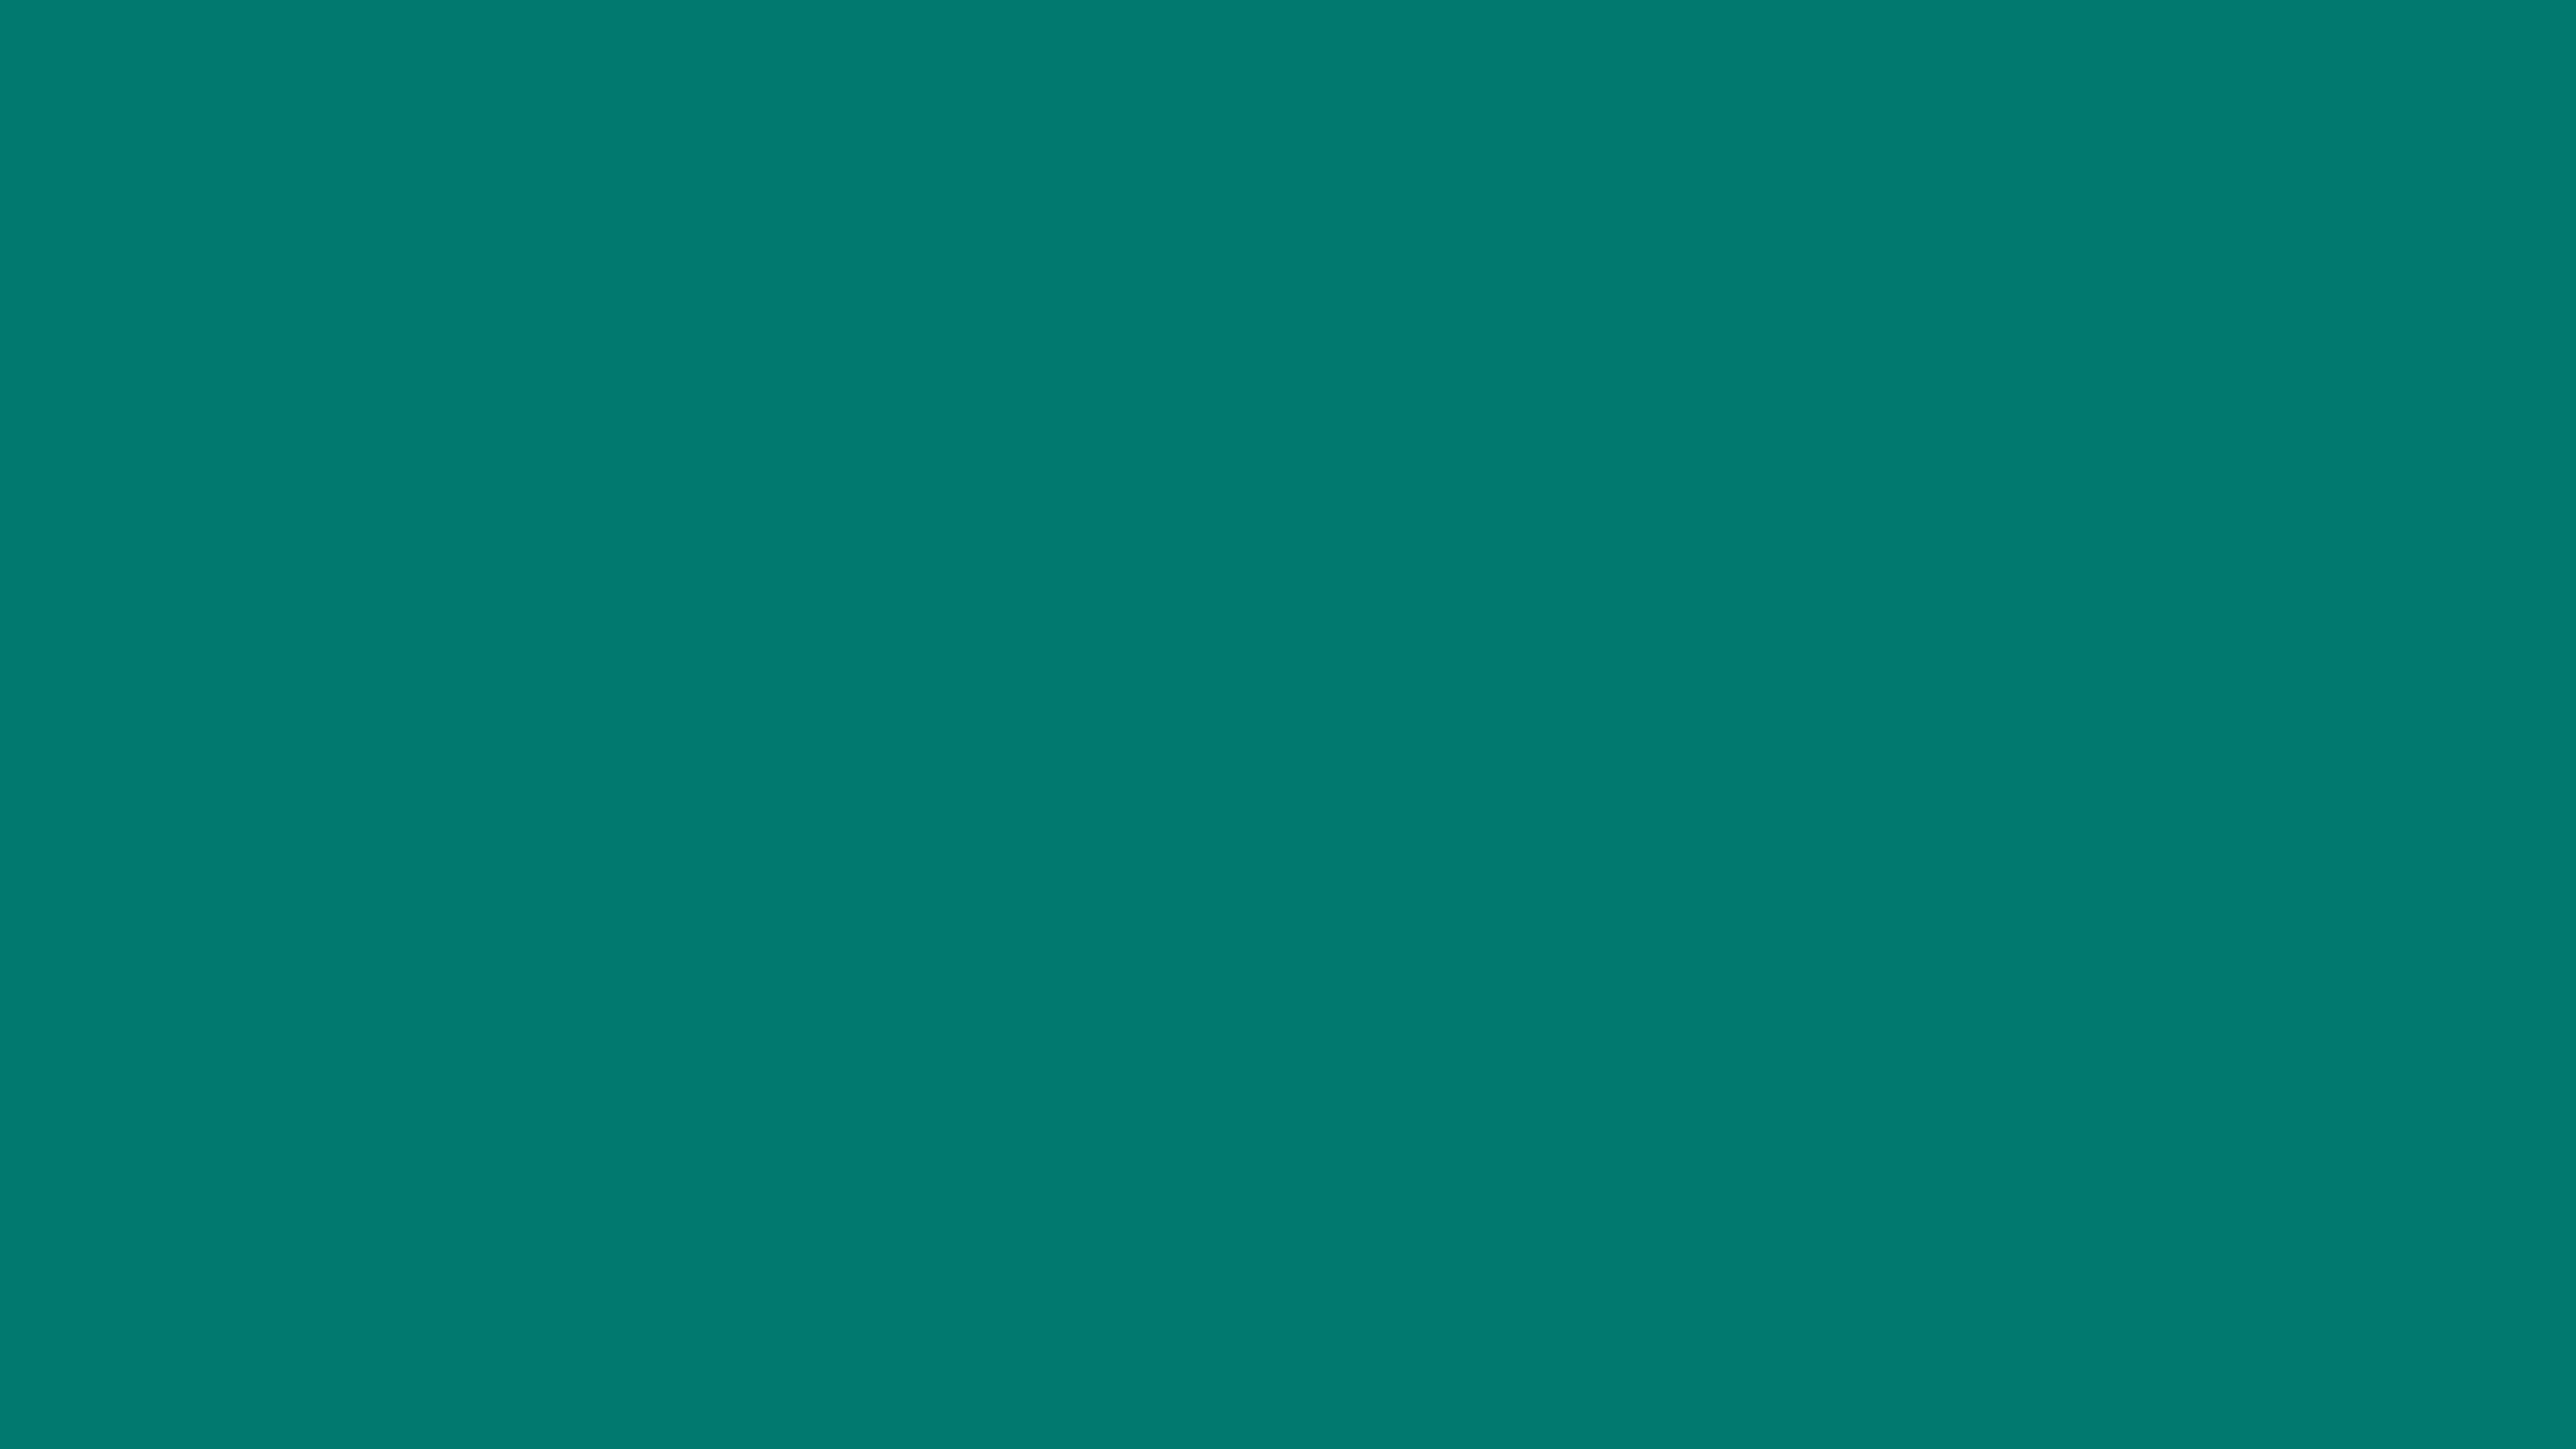 4096x2304 Pine Green Solid Color Background